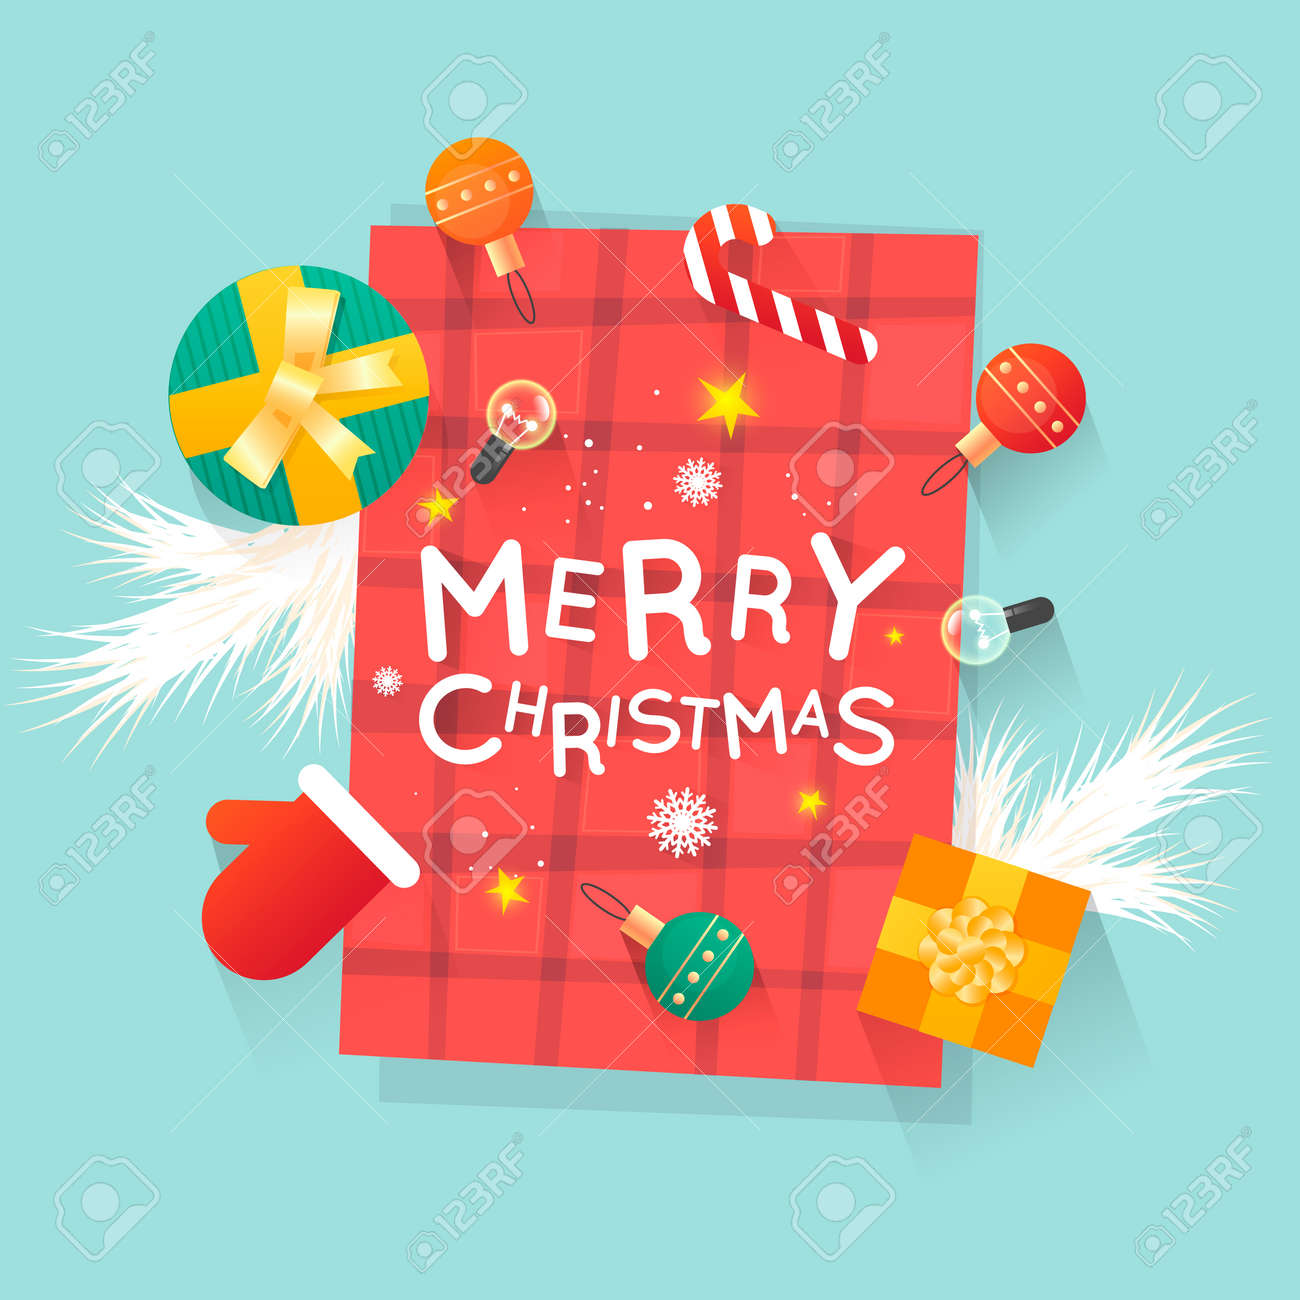 Merry Christmas and Happy New Year. New Year's toys, gifts on the table top view and text. Postcard, banner, printed matter, greeting card. Flat design. - 88701521